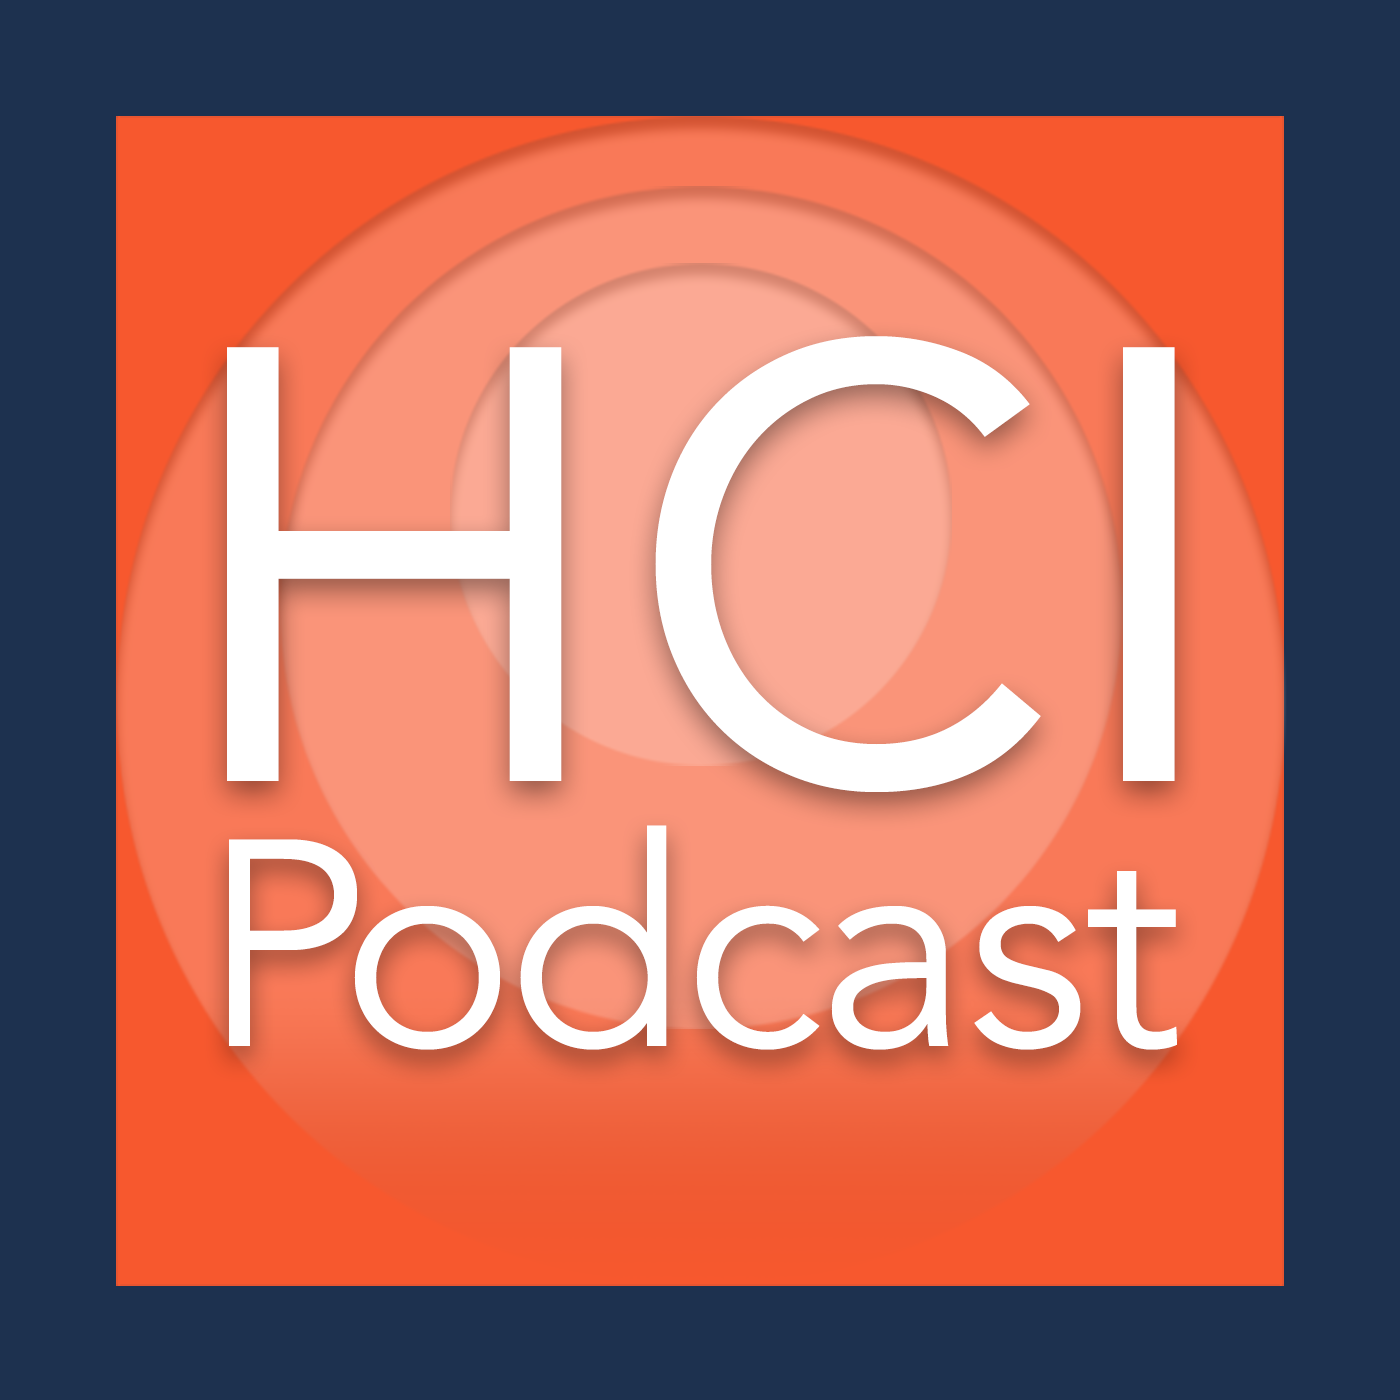 Human Capital Institute Podcasts